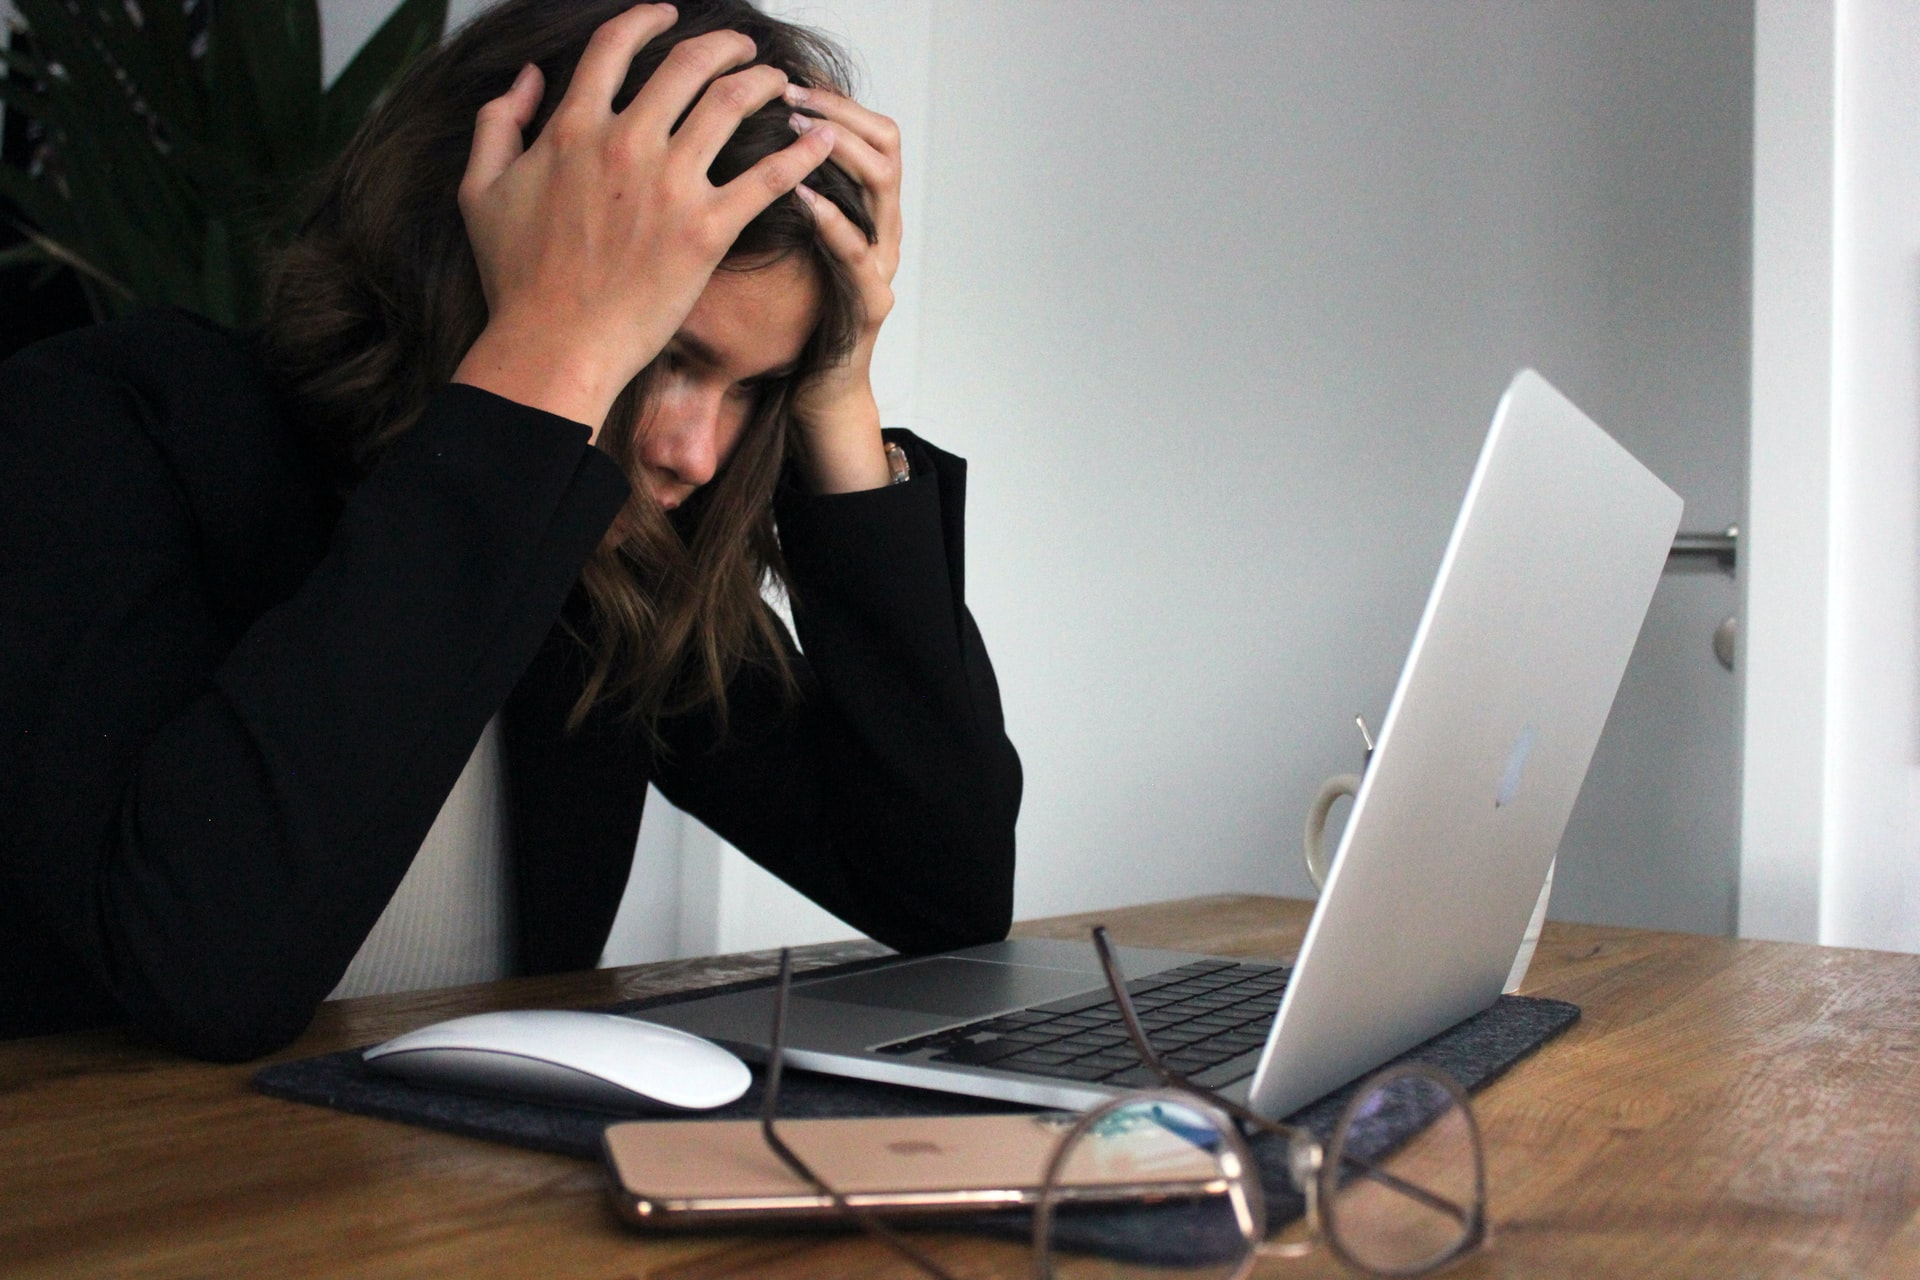 girl trying to fix computer error